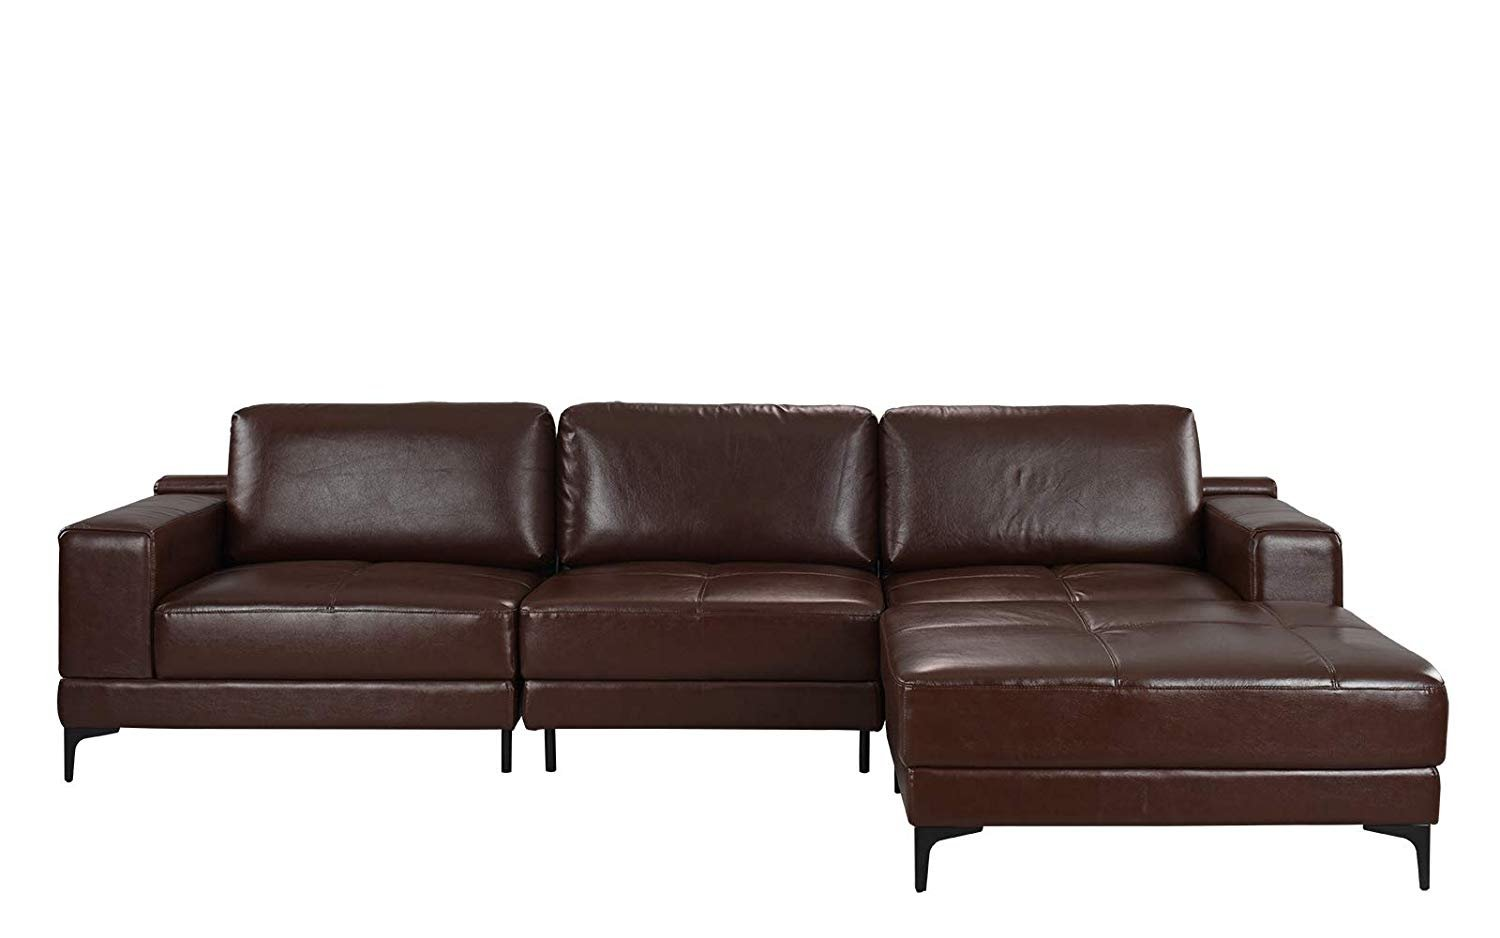 Cool Details About Modern 114 9 Inch Leather Sectional Sofa Living Room Reversible Couch Brown Bralicious Painted Fabric Chair Ideas Braliciousco